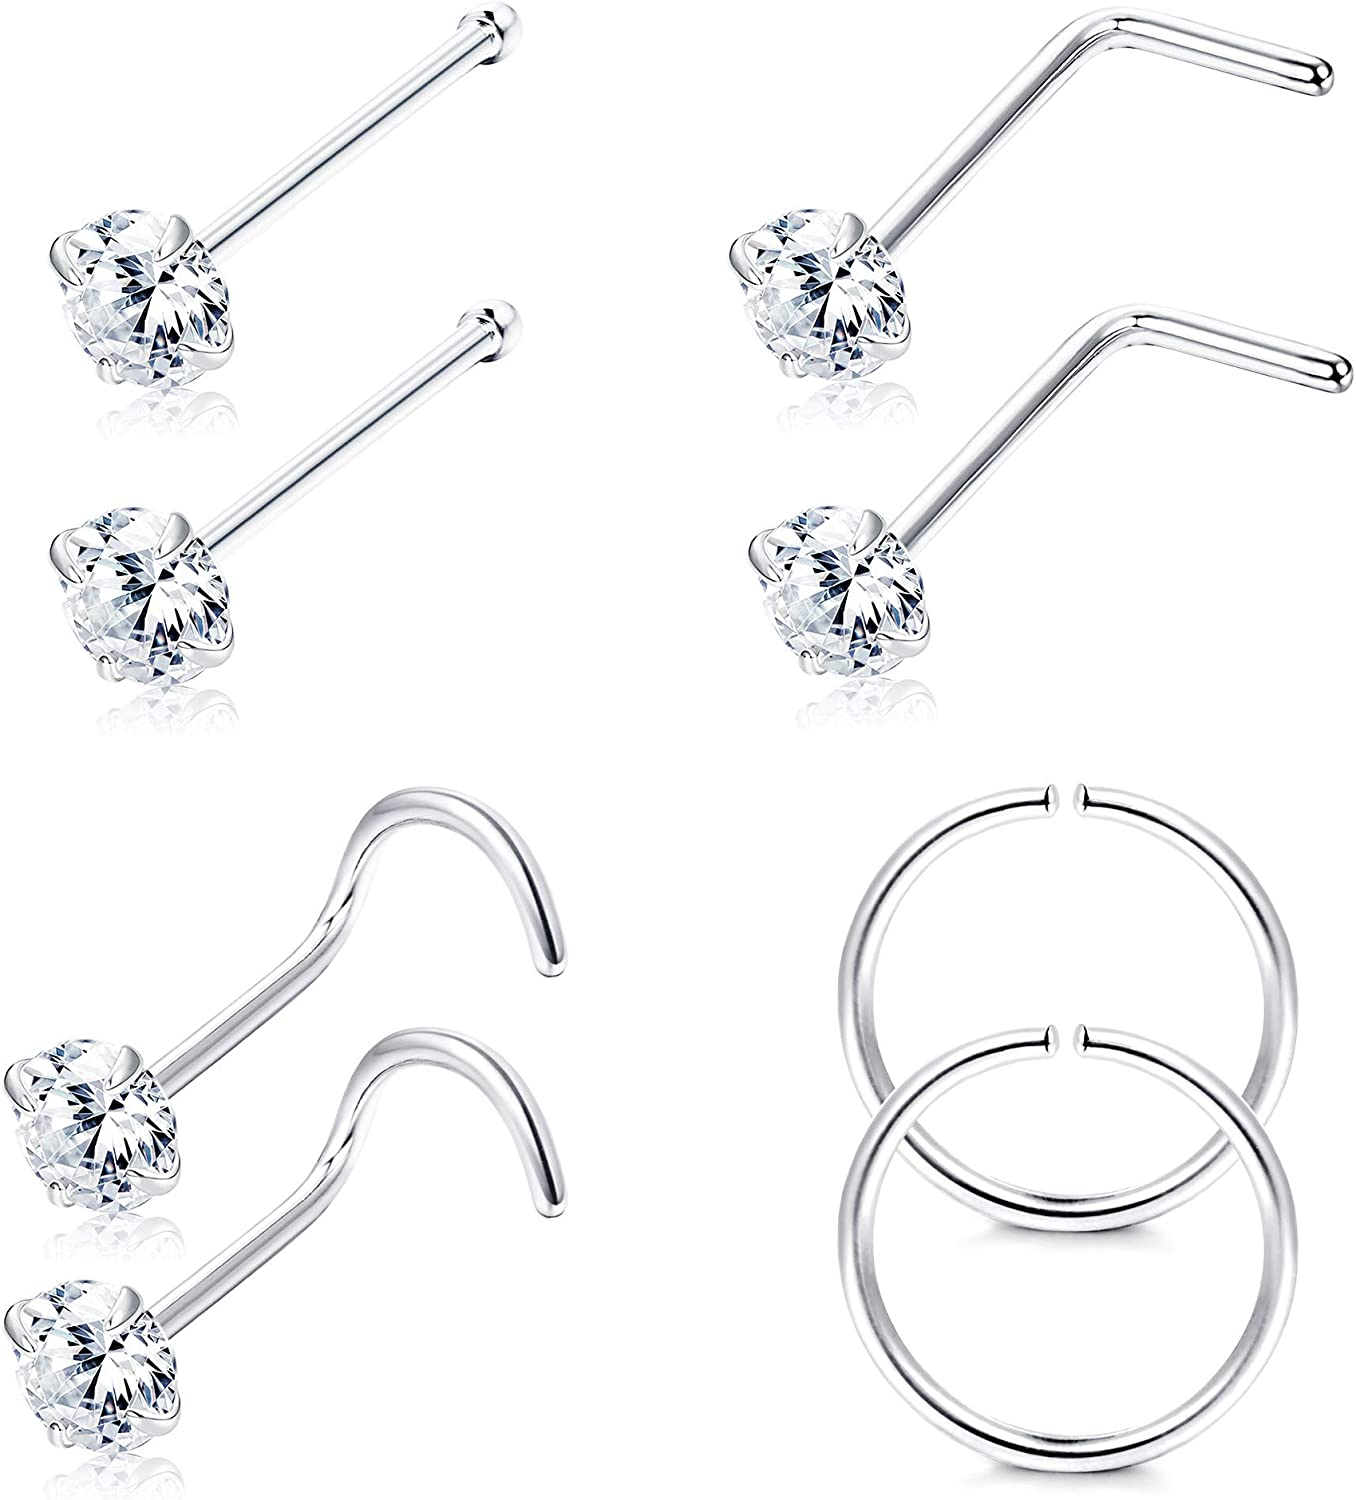 Sllaiss 22G 925 Sterling Silver Nose Rings Studs L Shaped CZ Nose Rings Hoop for Women Men Corkscrew Nose Rings Helix Piercing Jewelry Set Cartilage Earrings Hoop Tragus 8Pcs